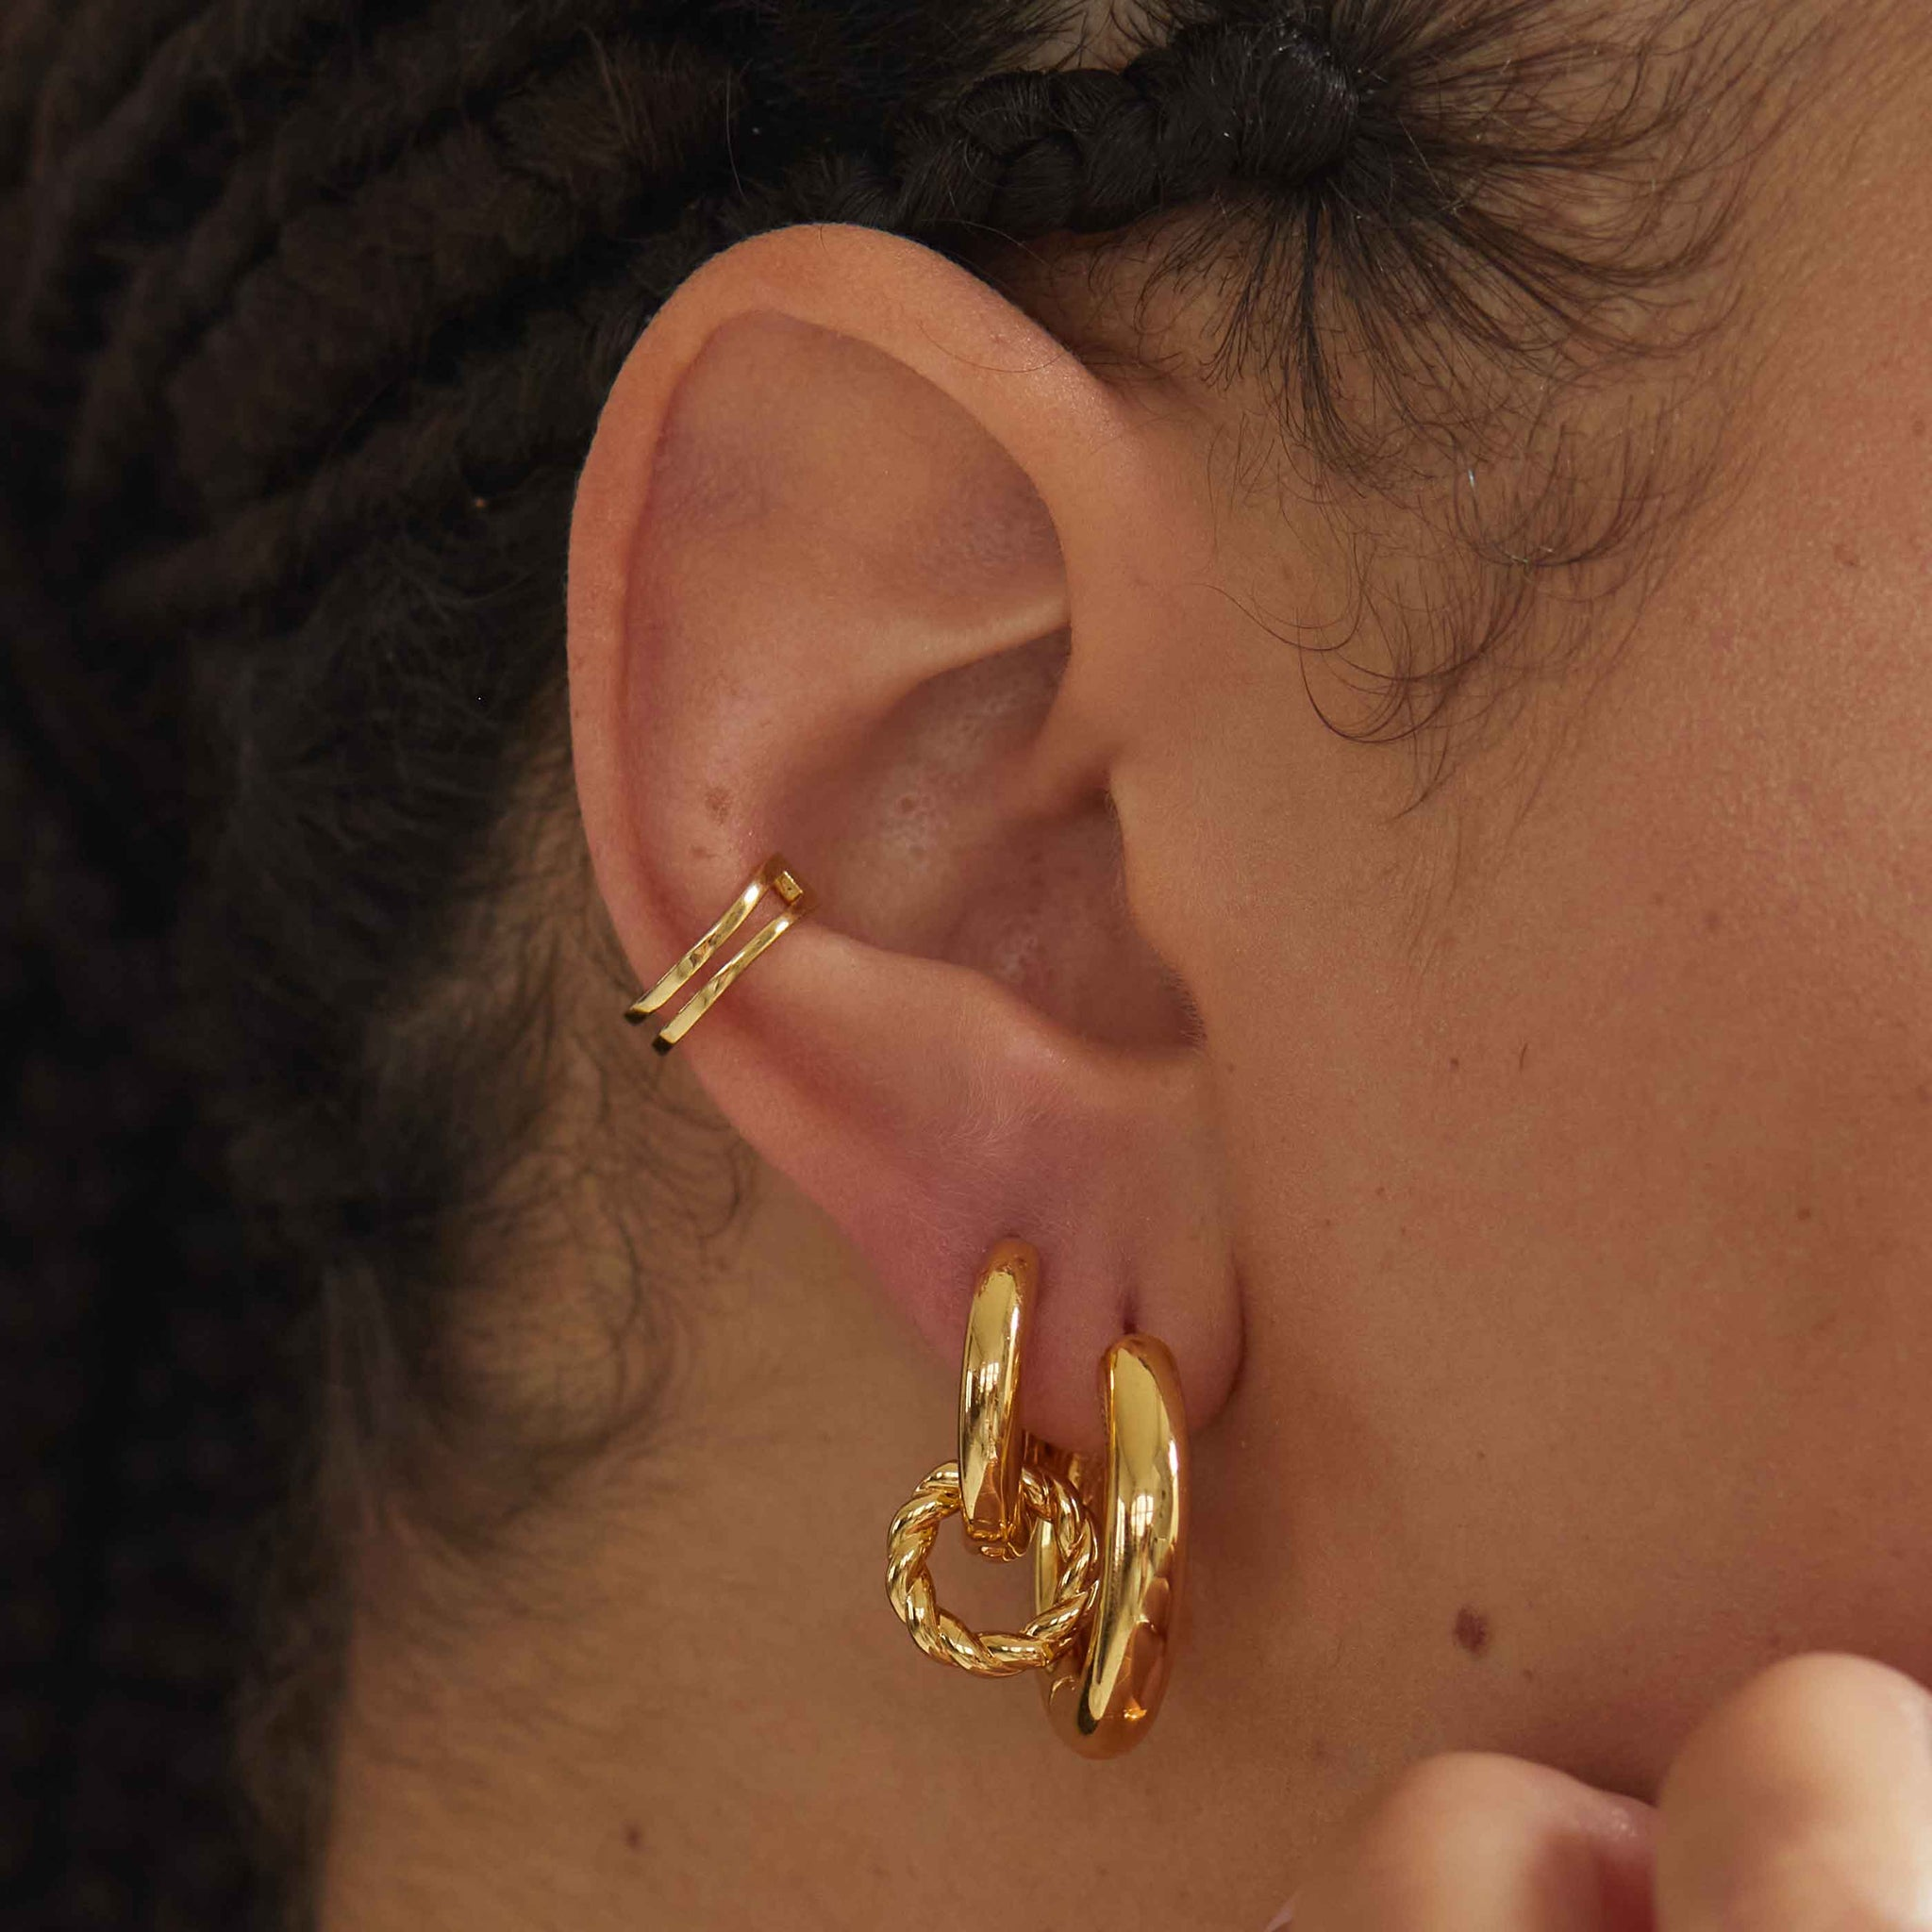 Chunky Hoops in Gold worn with gold ear cuff